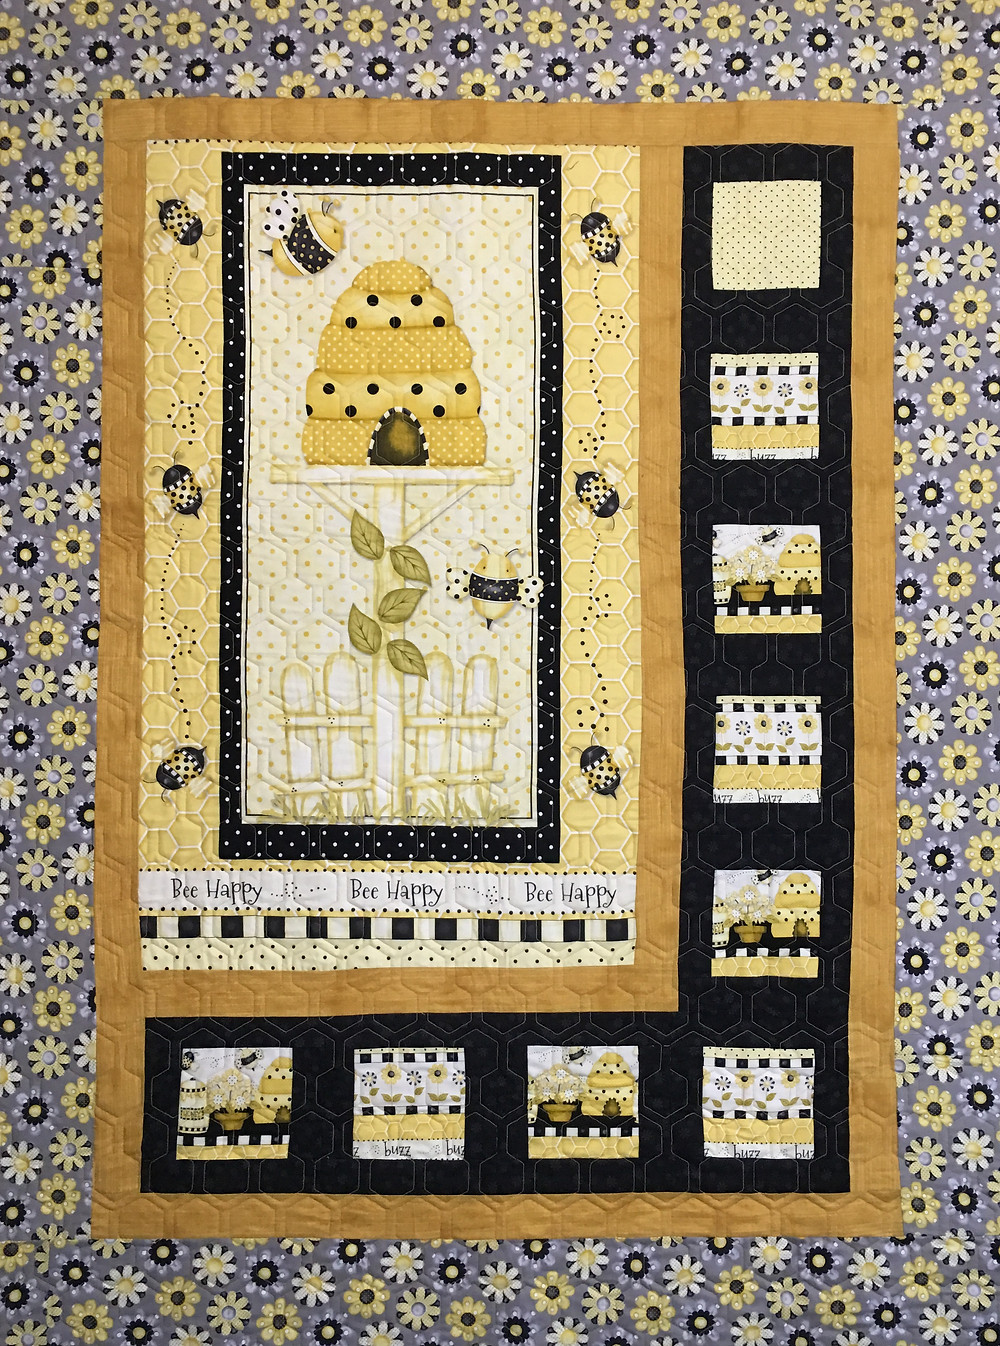 Bee Happy Quilt by Wendy Bell